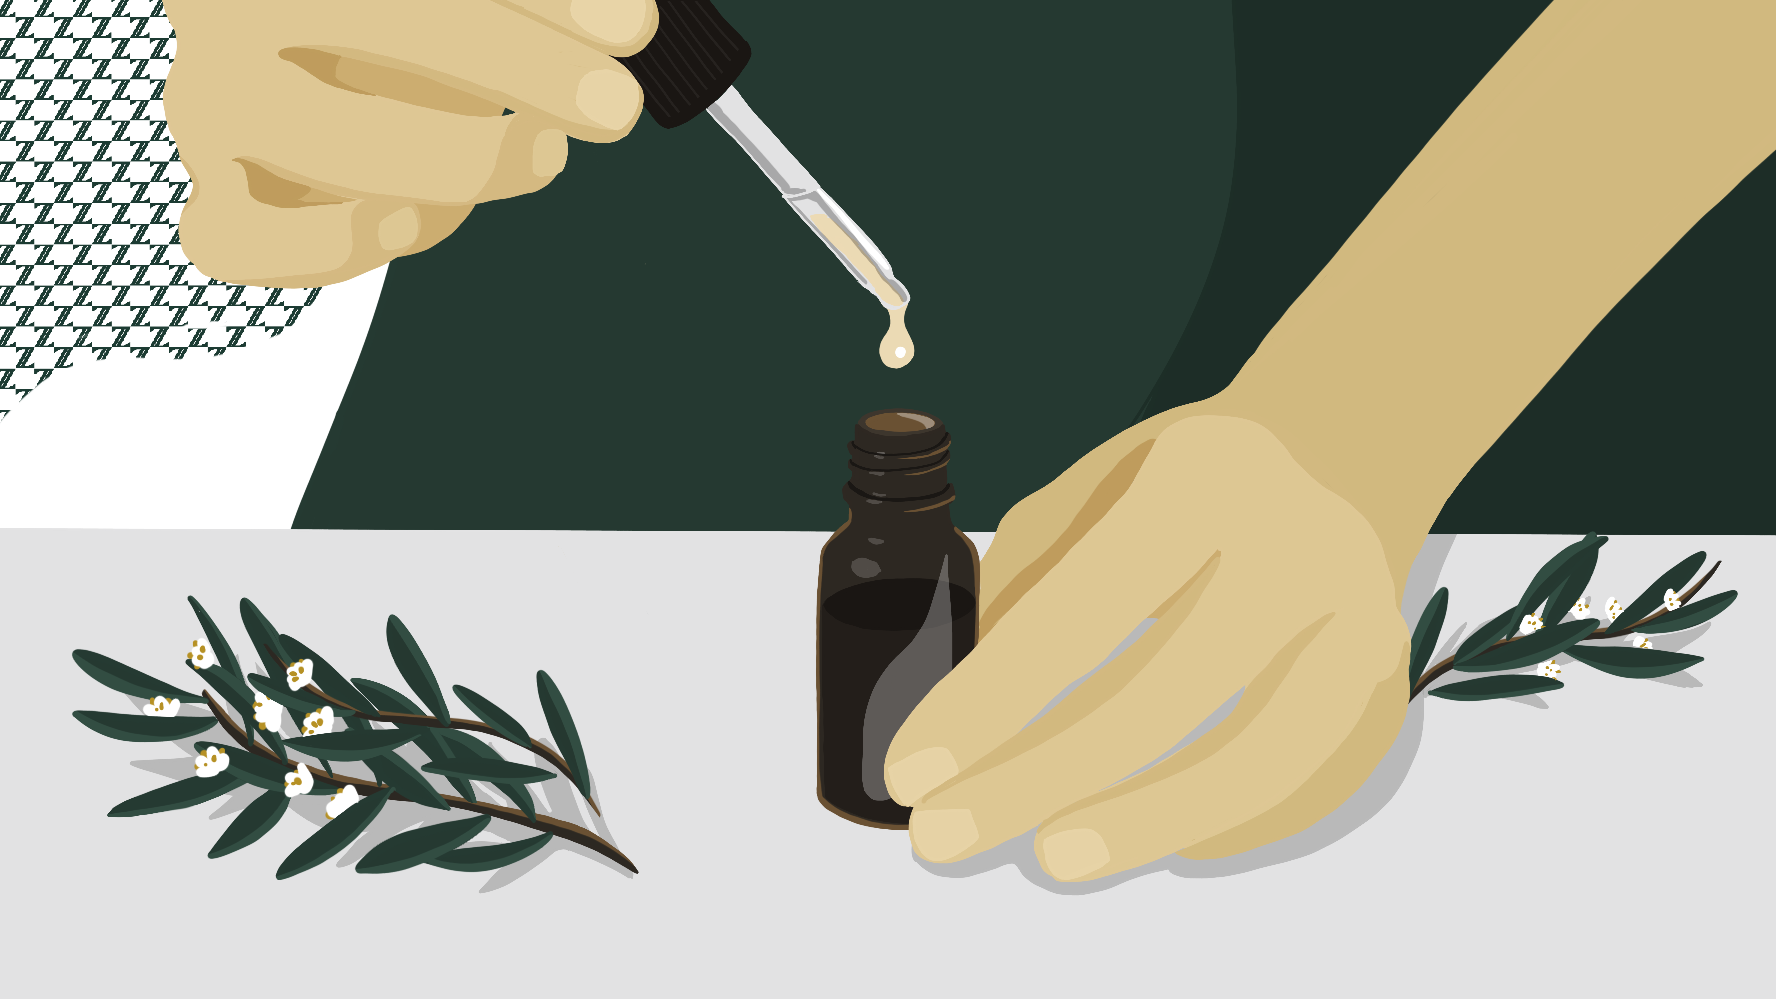 Use Tea Tree Oil to kill that zit